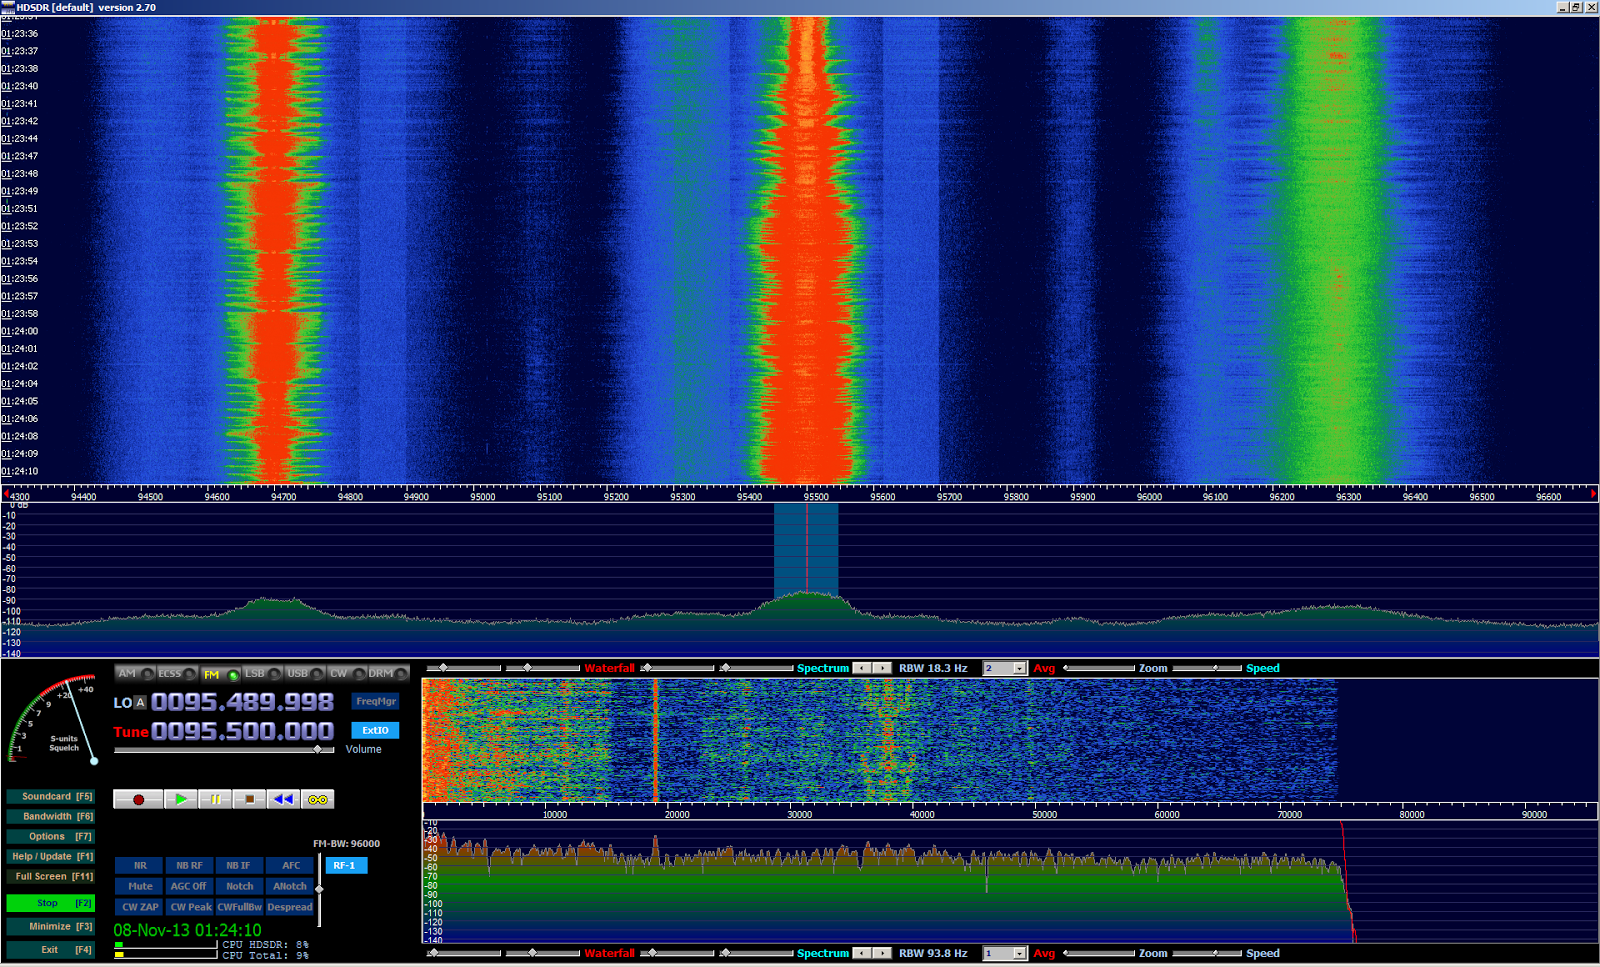 Every Blade of Grass: Yet Another Post About SDR Using A $20